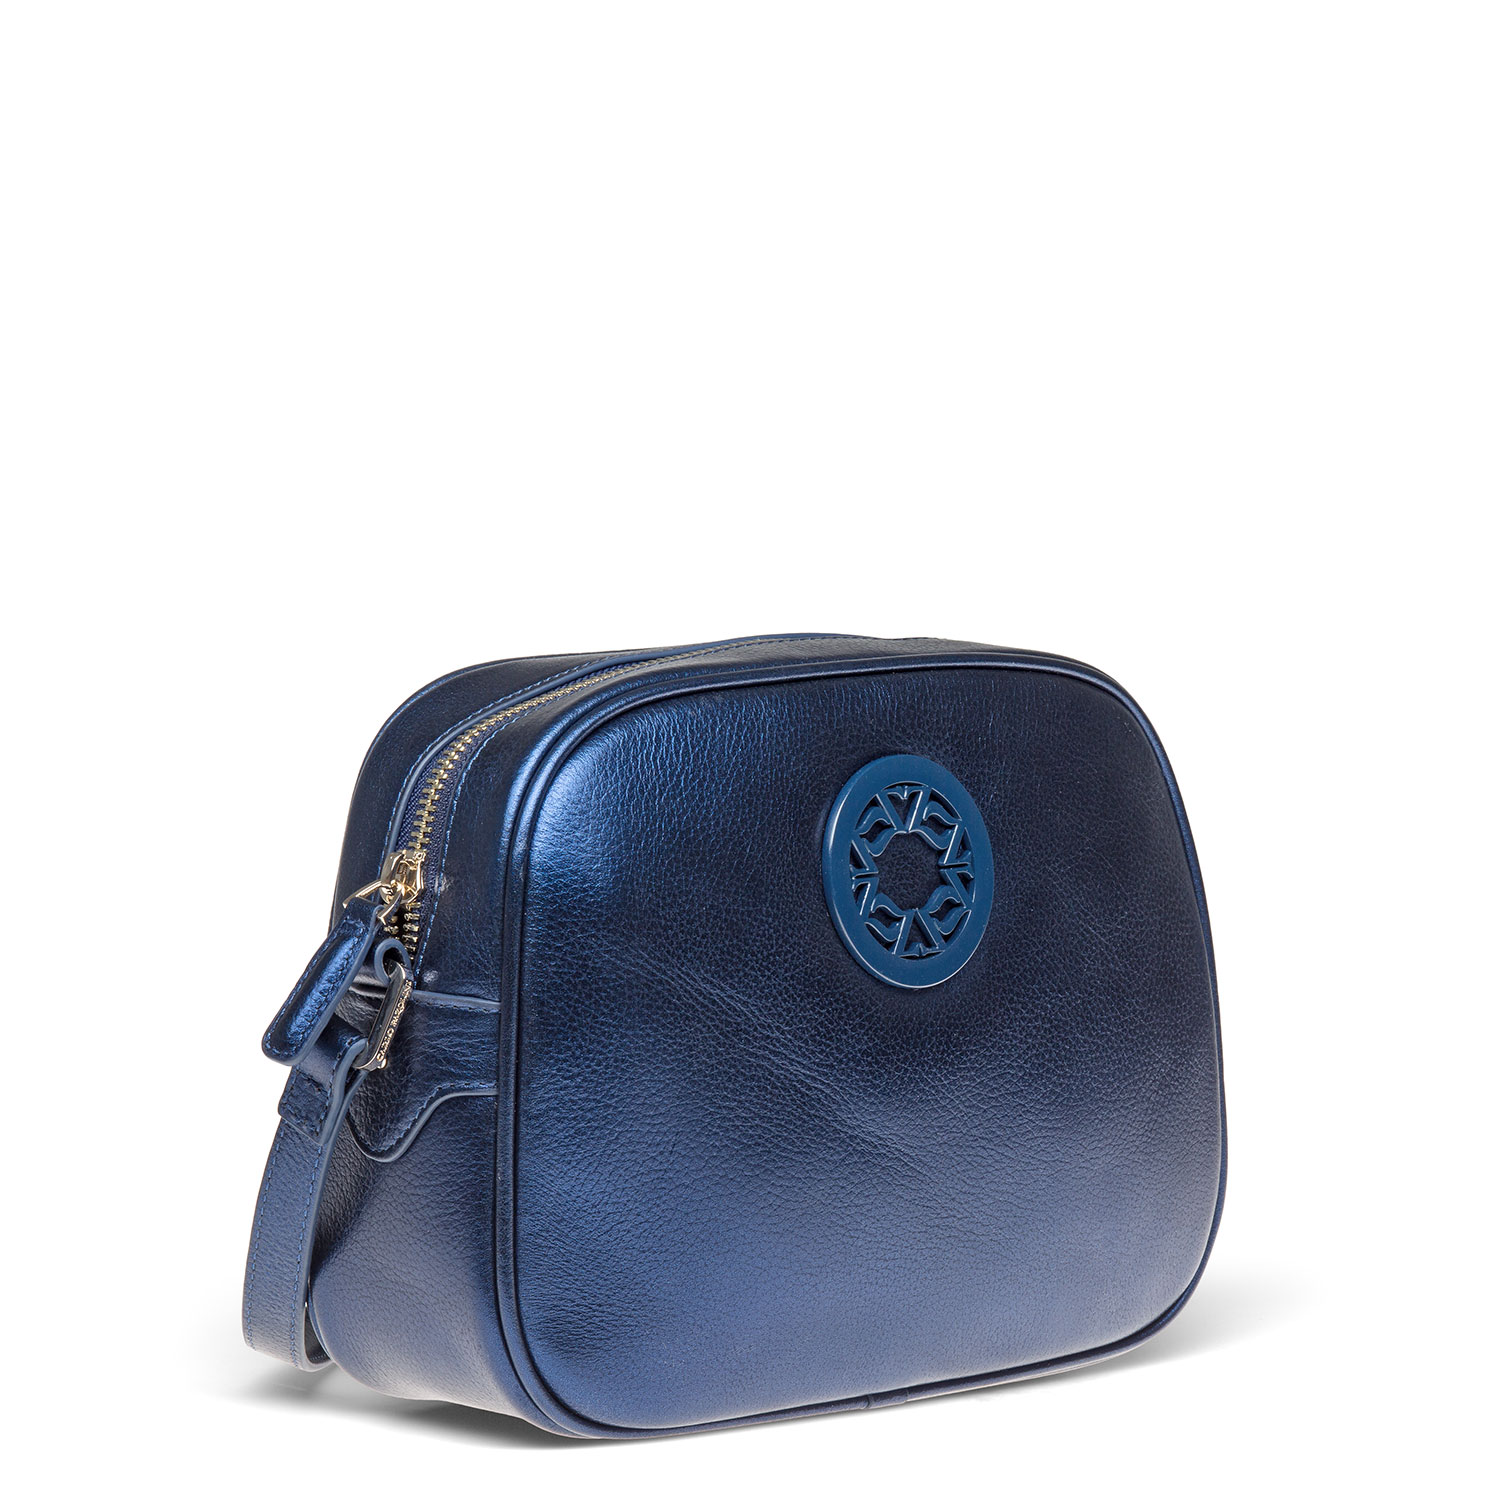 Women's bag CARLO PAZOLINI SB-N0005-6ML